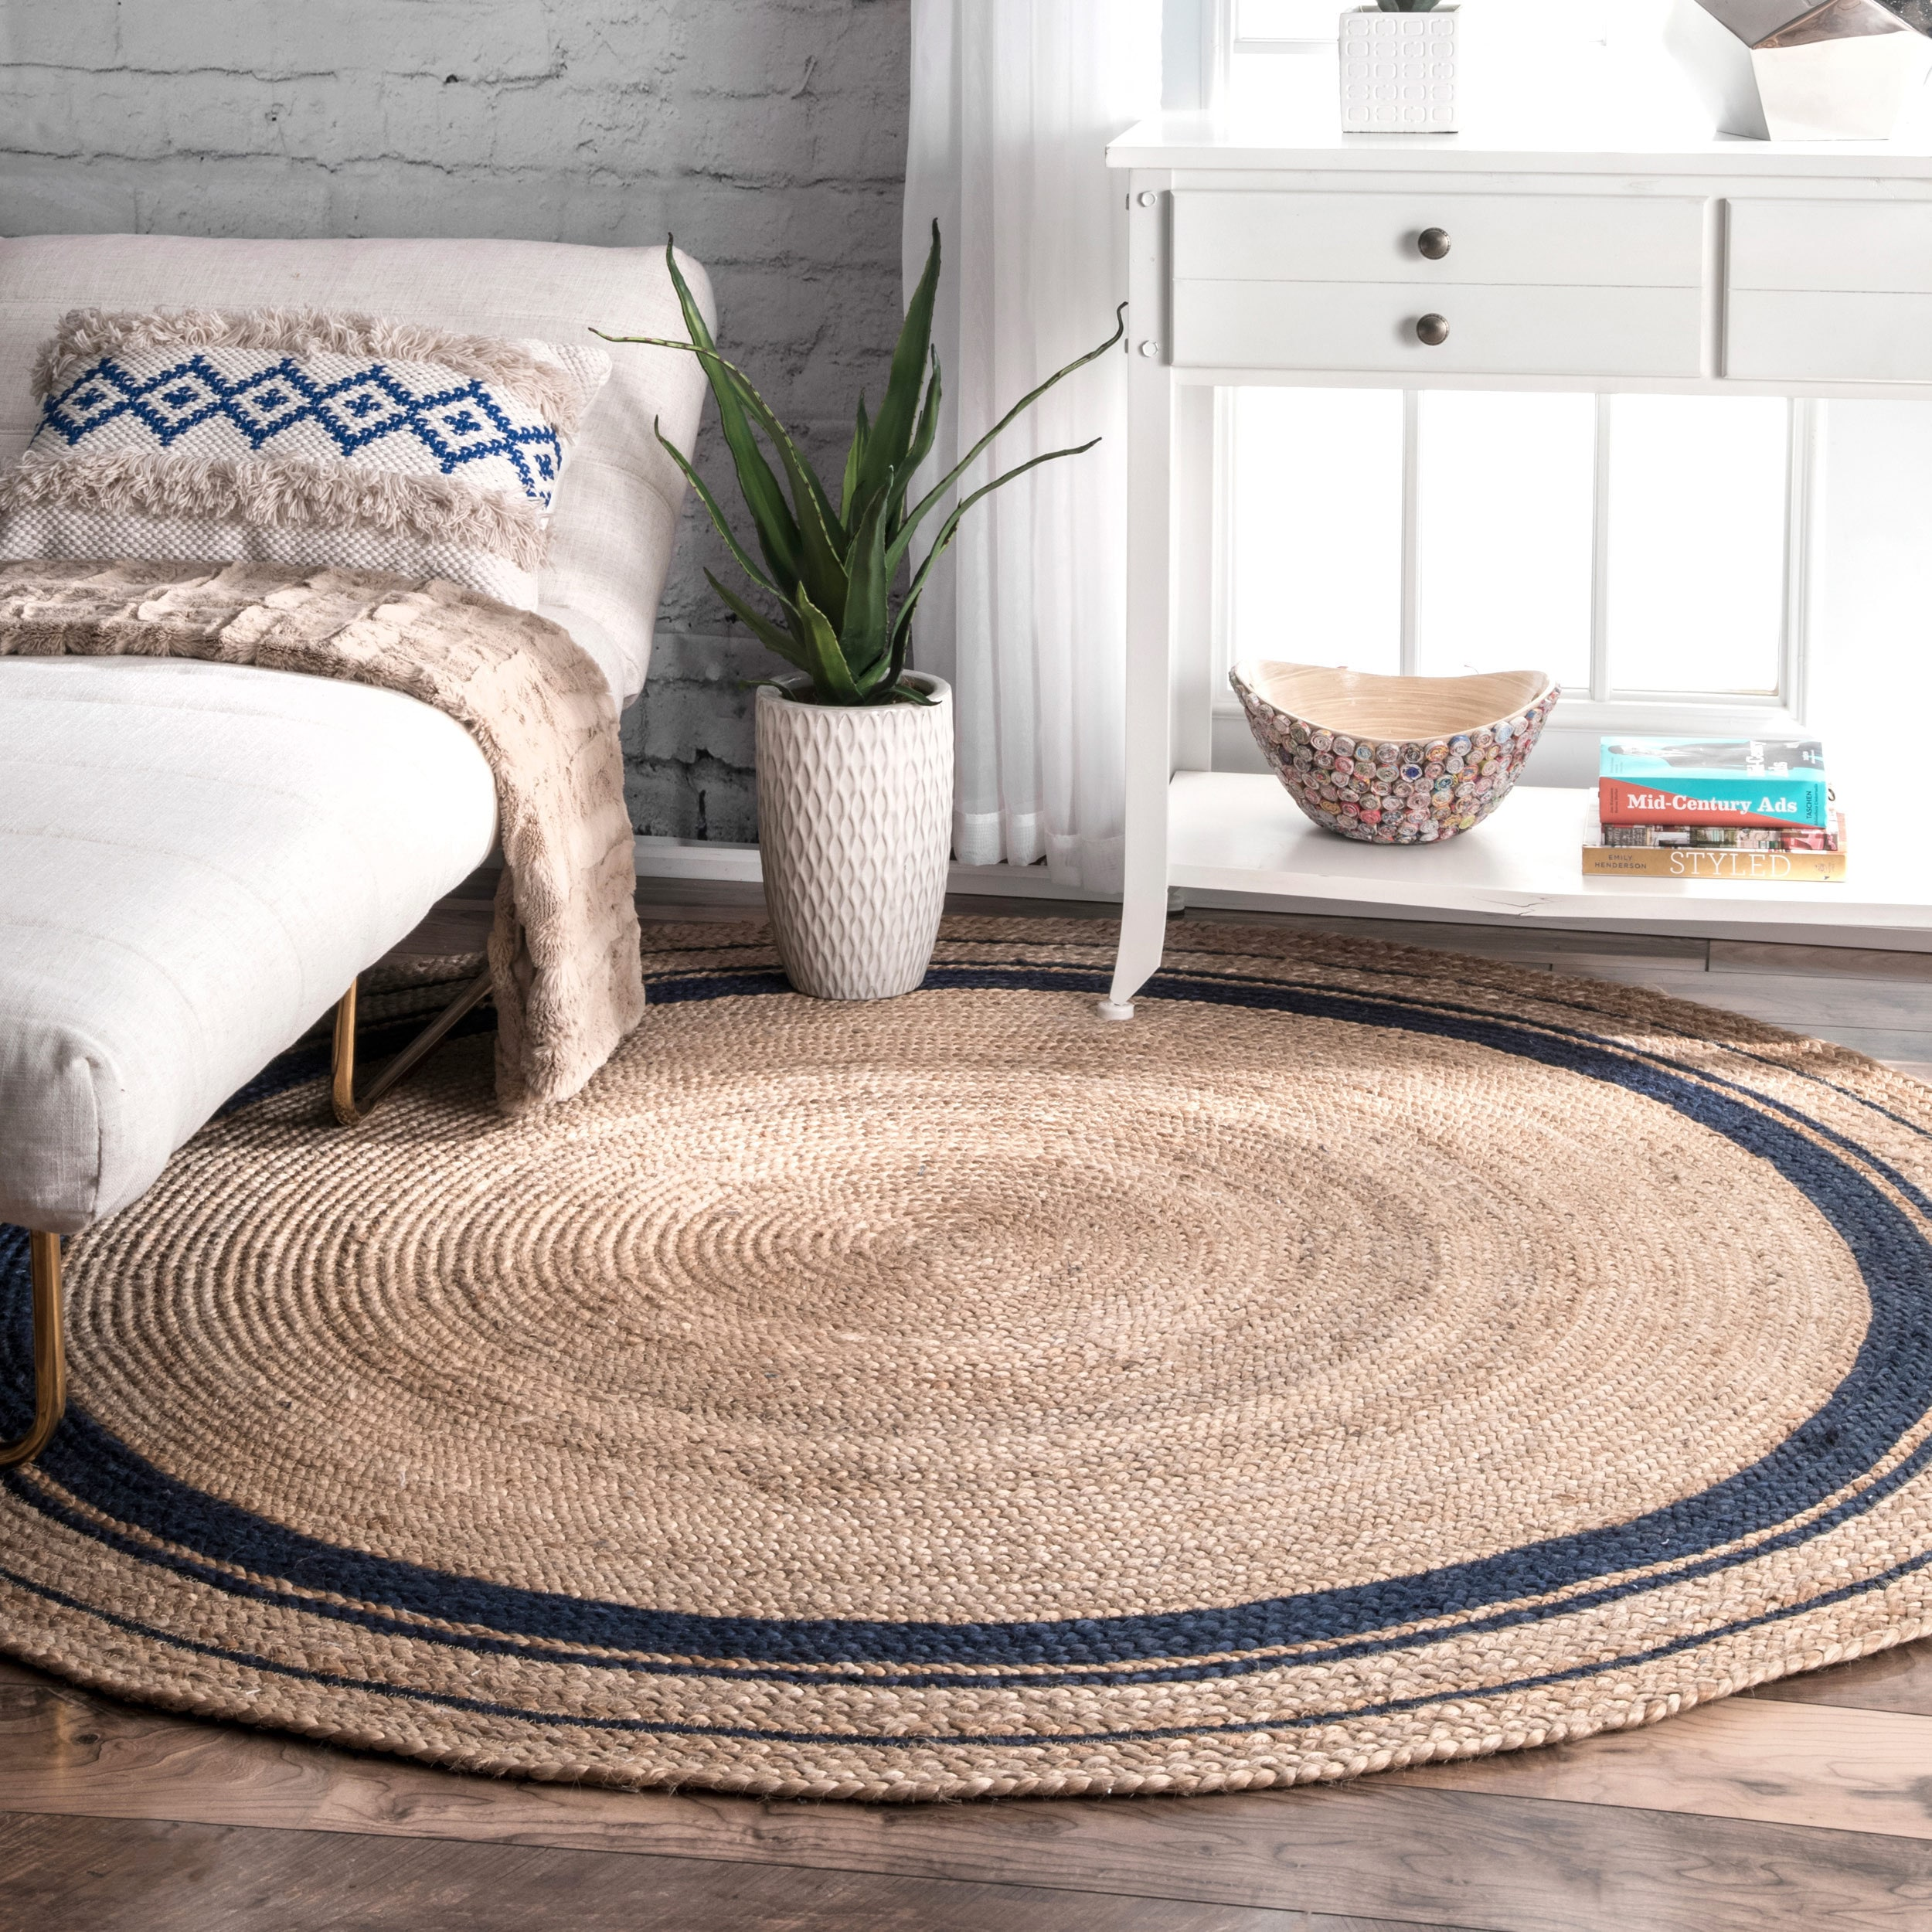 Nuloom braided natural fiber jute blue round rug 6